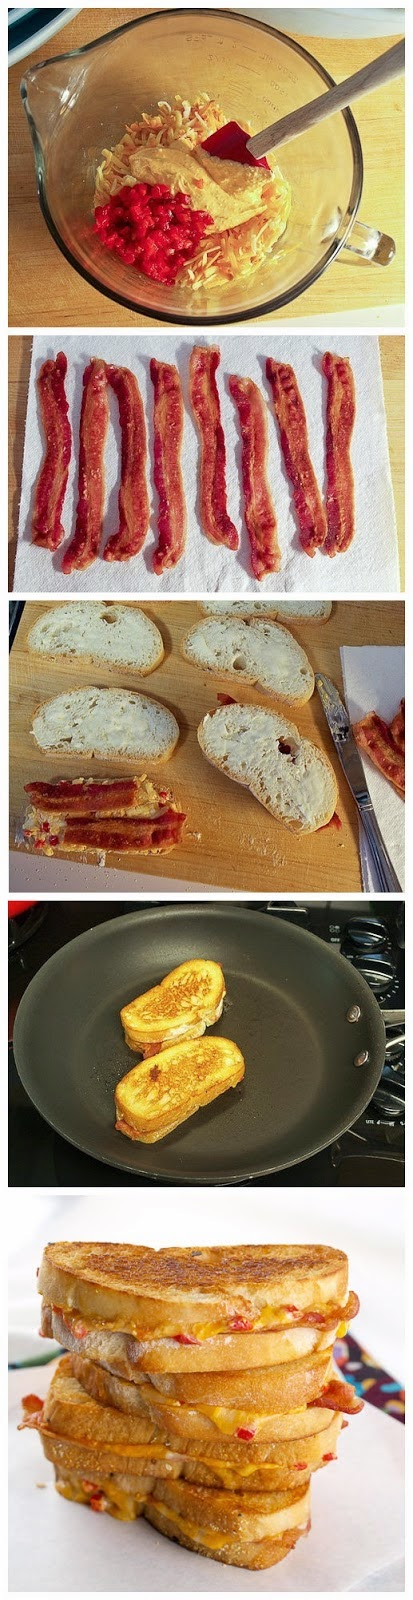 Four-Cheese-Grilled-Pimento-Cheese-and-Bacon-Sandwiches-Recipe